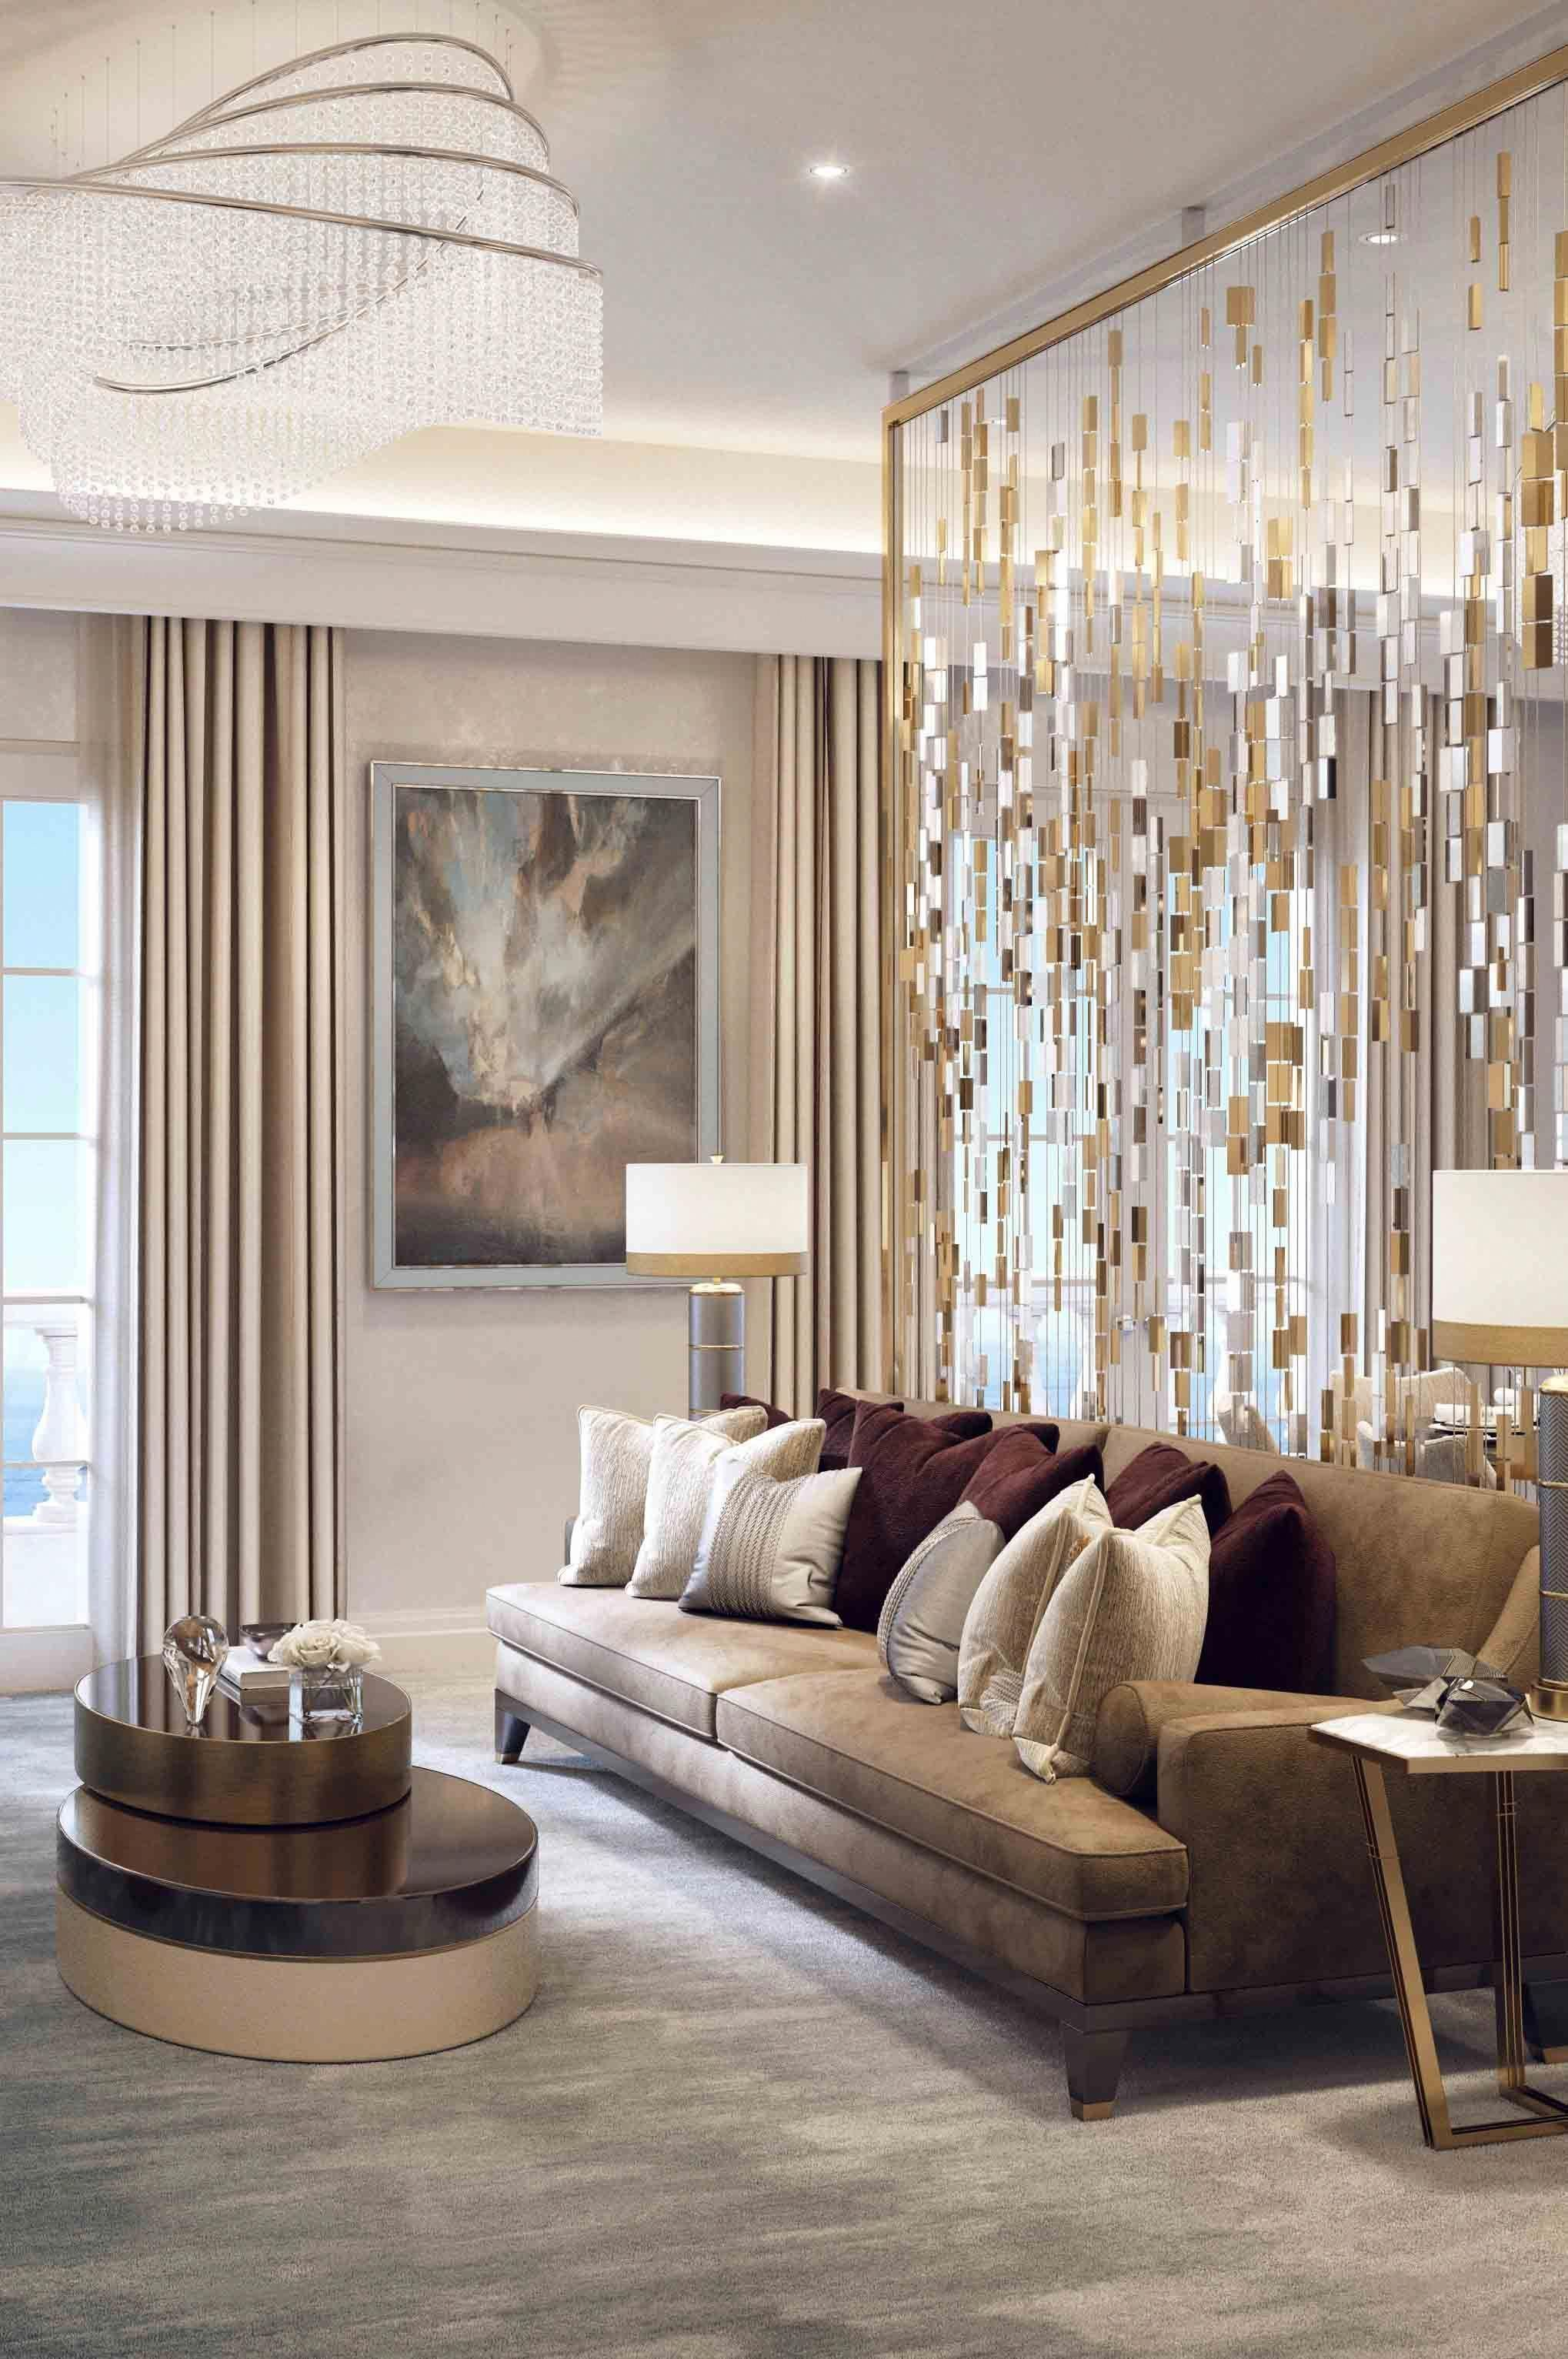 Before Starting Your Next Interior Design Project Discover With Delightfull The Best Luxury Furniture And Luxury Living Room Luxury Interior Luxury Furniture